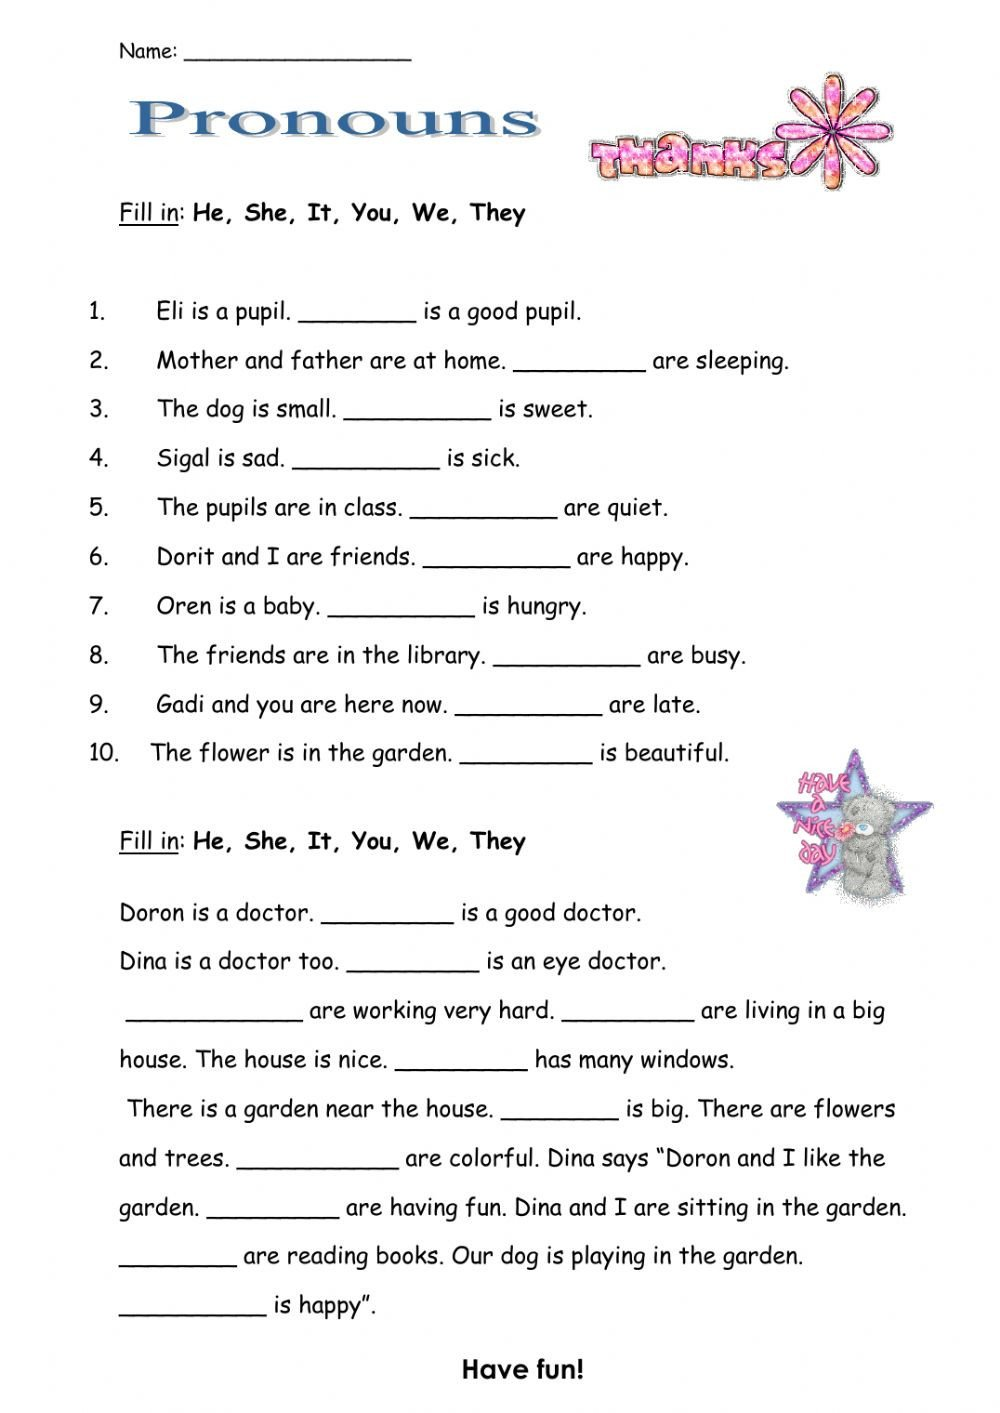 Pronoun Worksheets 5th Grade Pronouns Interactive Worksheet